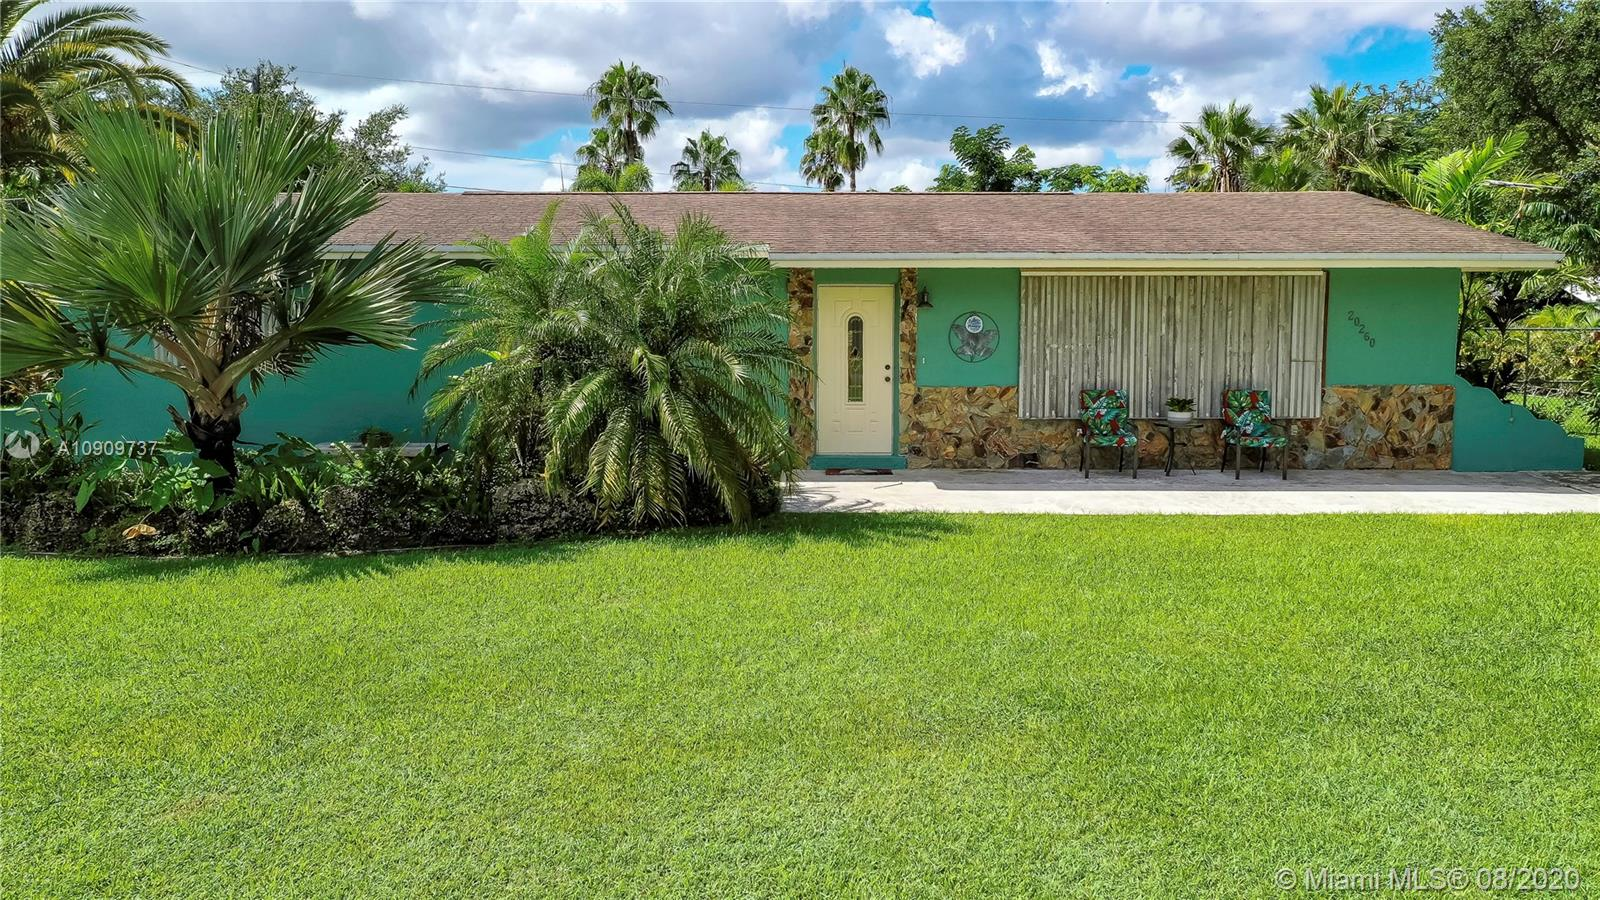 20260 SW 317th St Property Photo - Homestead, FL real estate listing